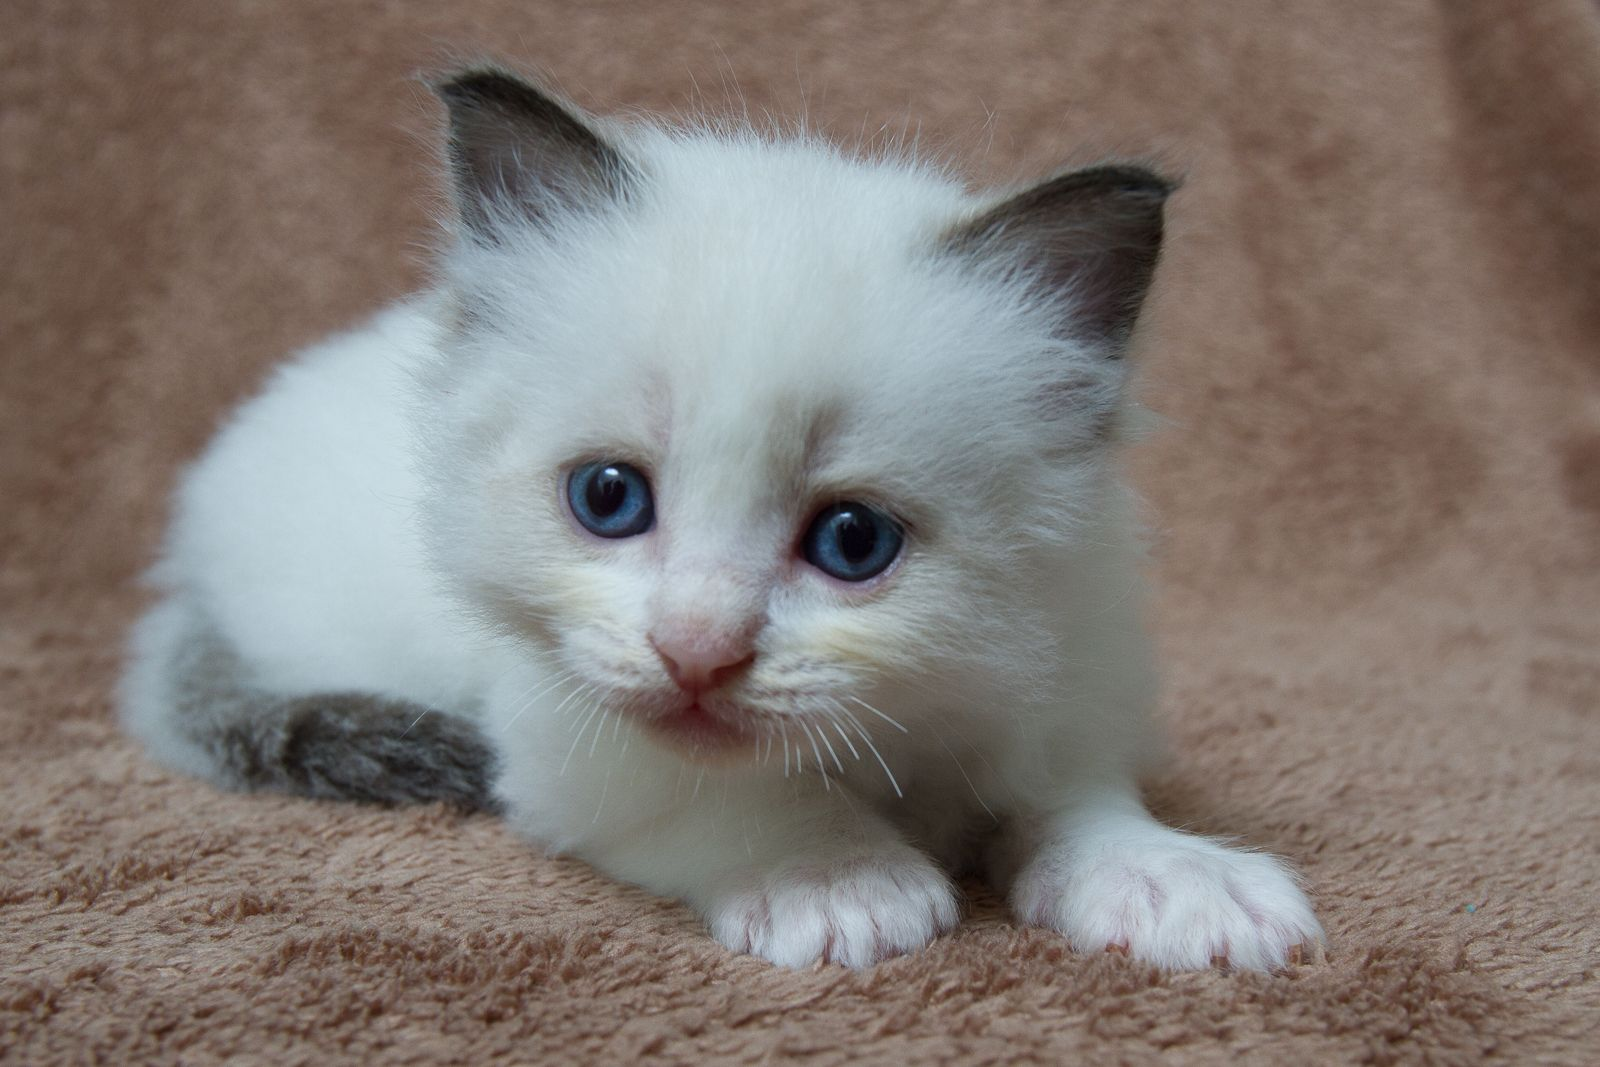 2014 Fillmore A Zwollywood Cat 5 Weeks Old Ragdoll Kitten Seal Bicolour Cars Litter Cuddly Animals Ragdoll Kitten Animals